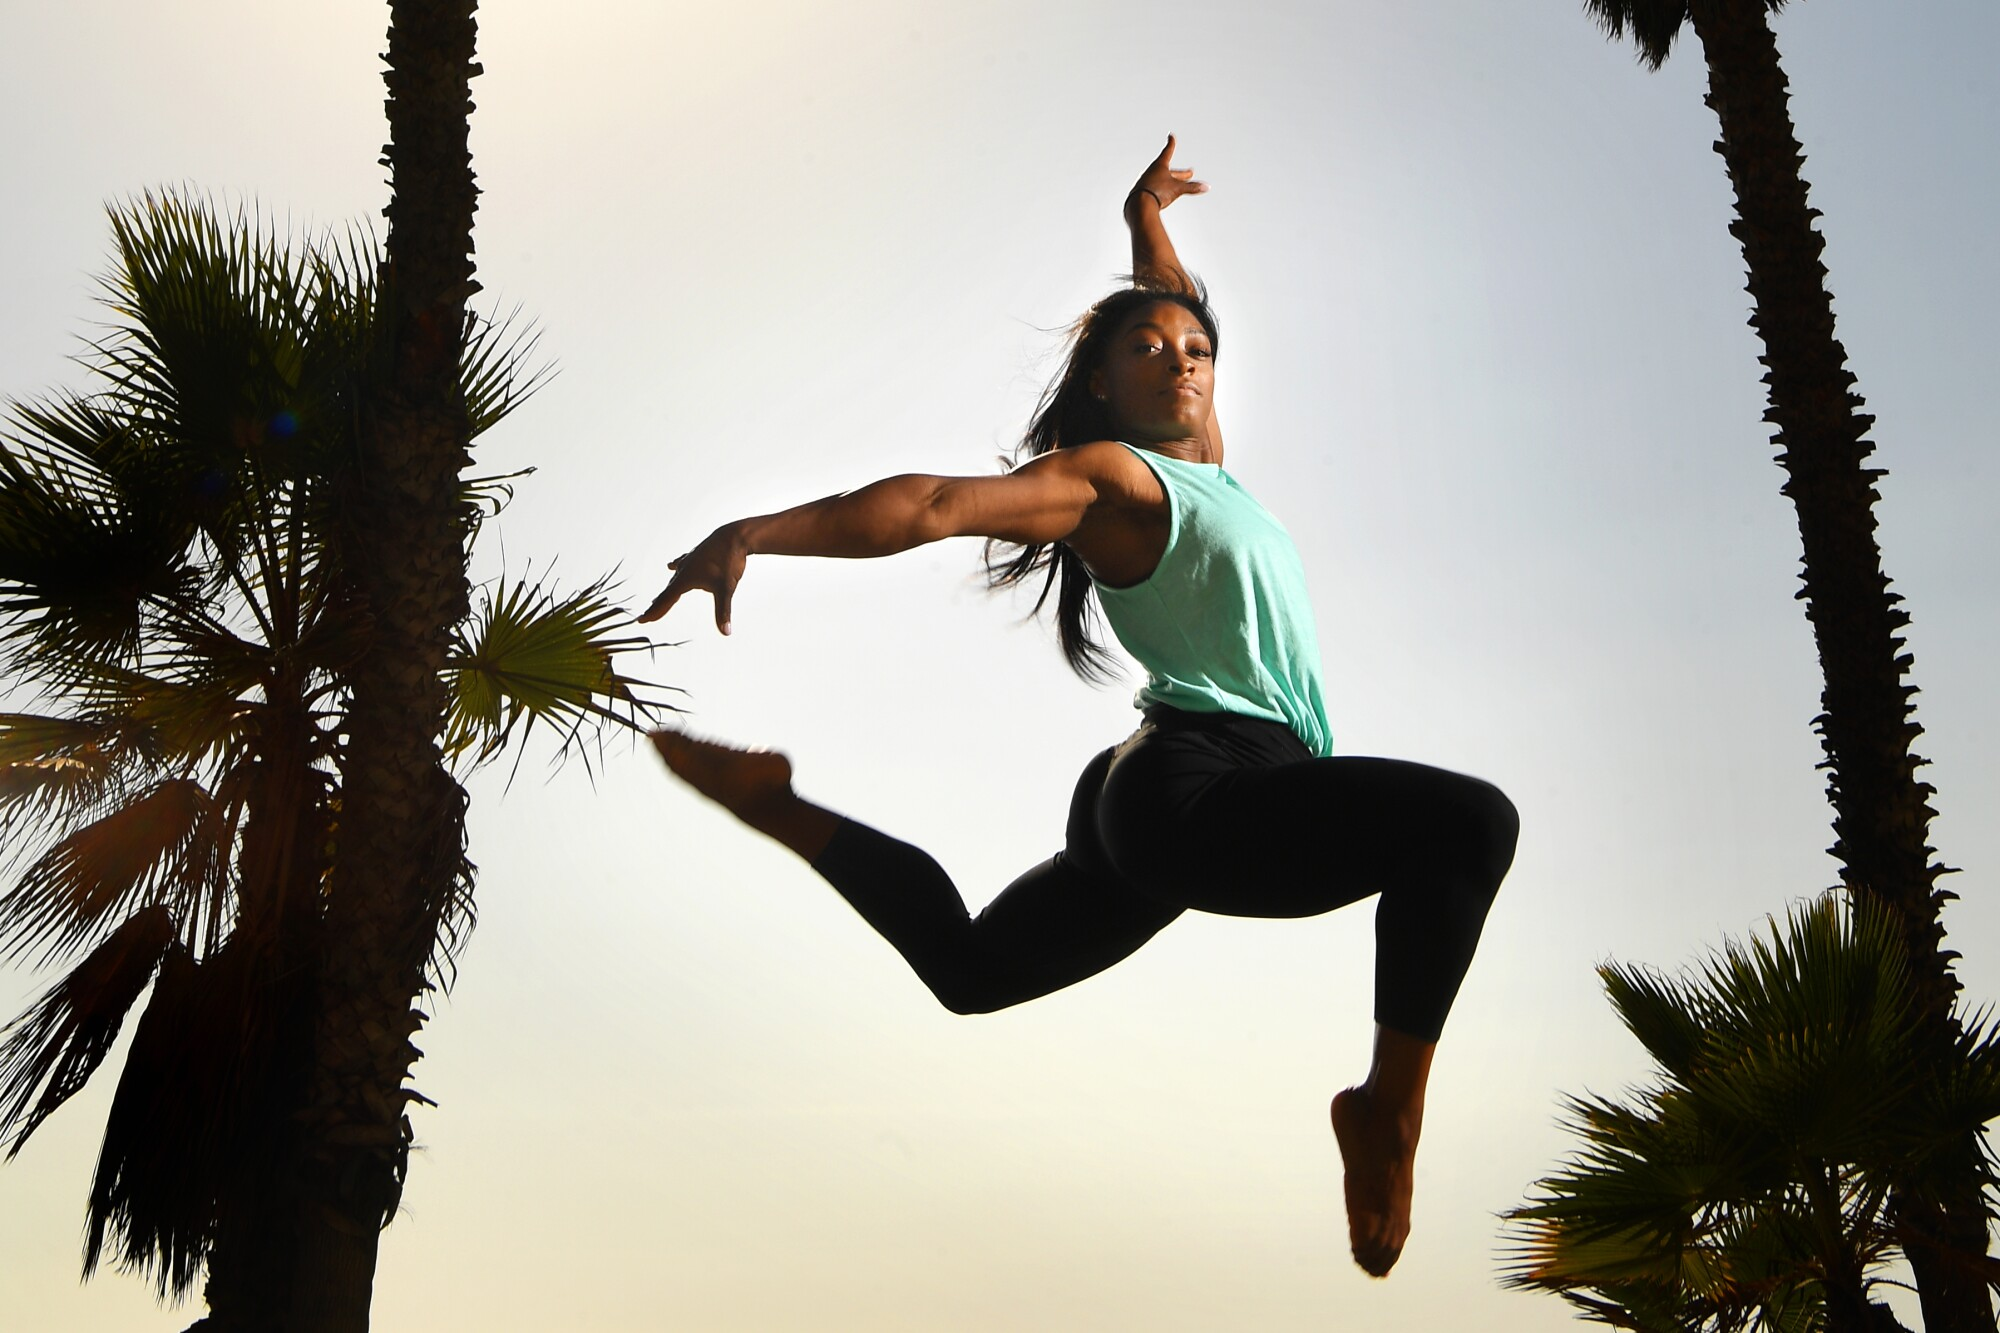 Simone Biles, photographed at Shutters on the Beach in Santa Monica, is America's most decorated gymnast.